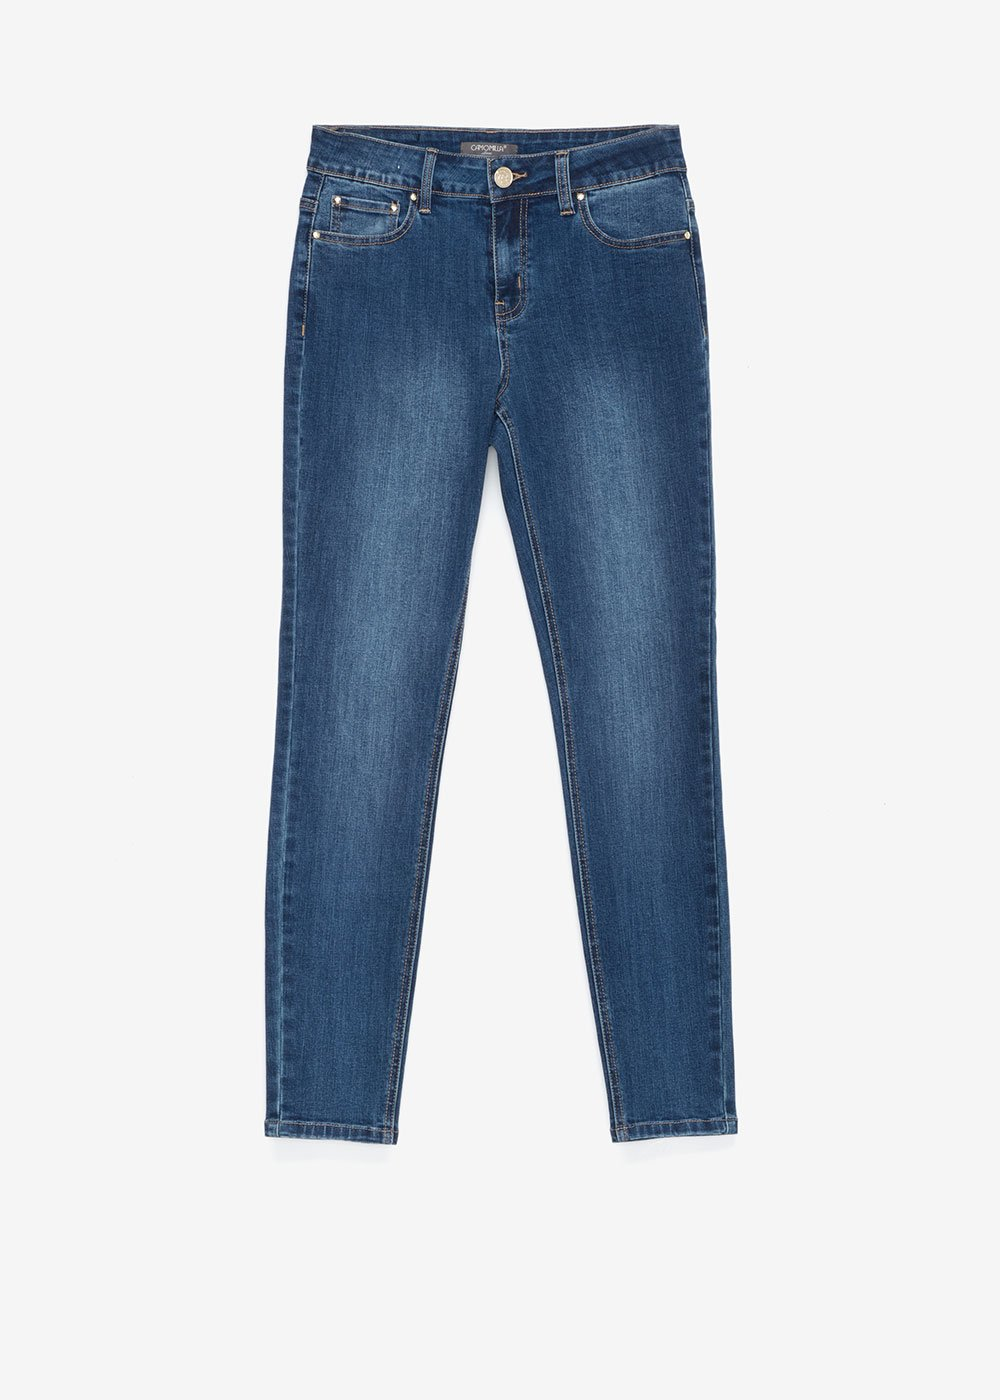 Skinny jeans with gold details - Denim - Woman